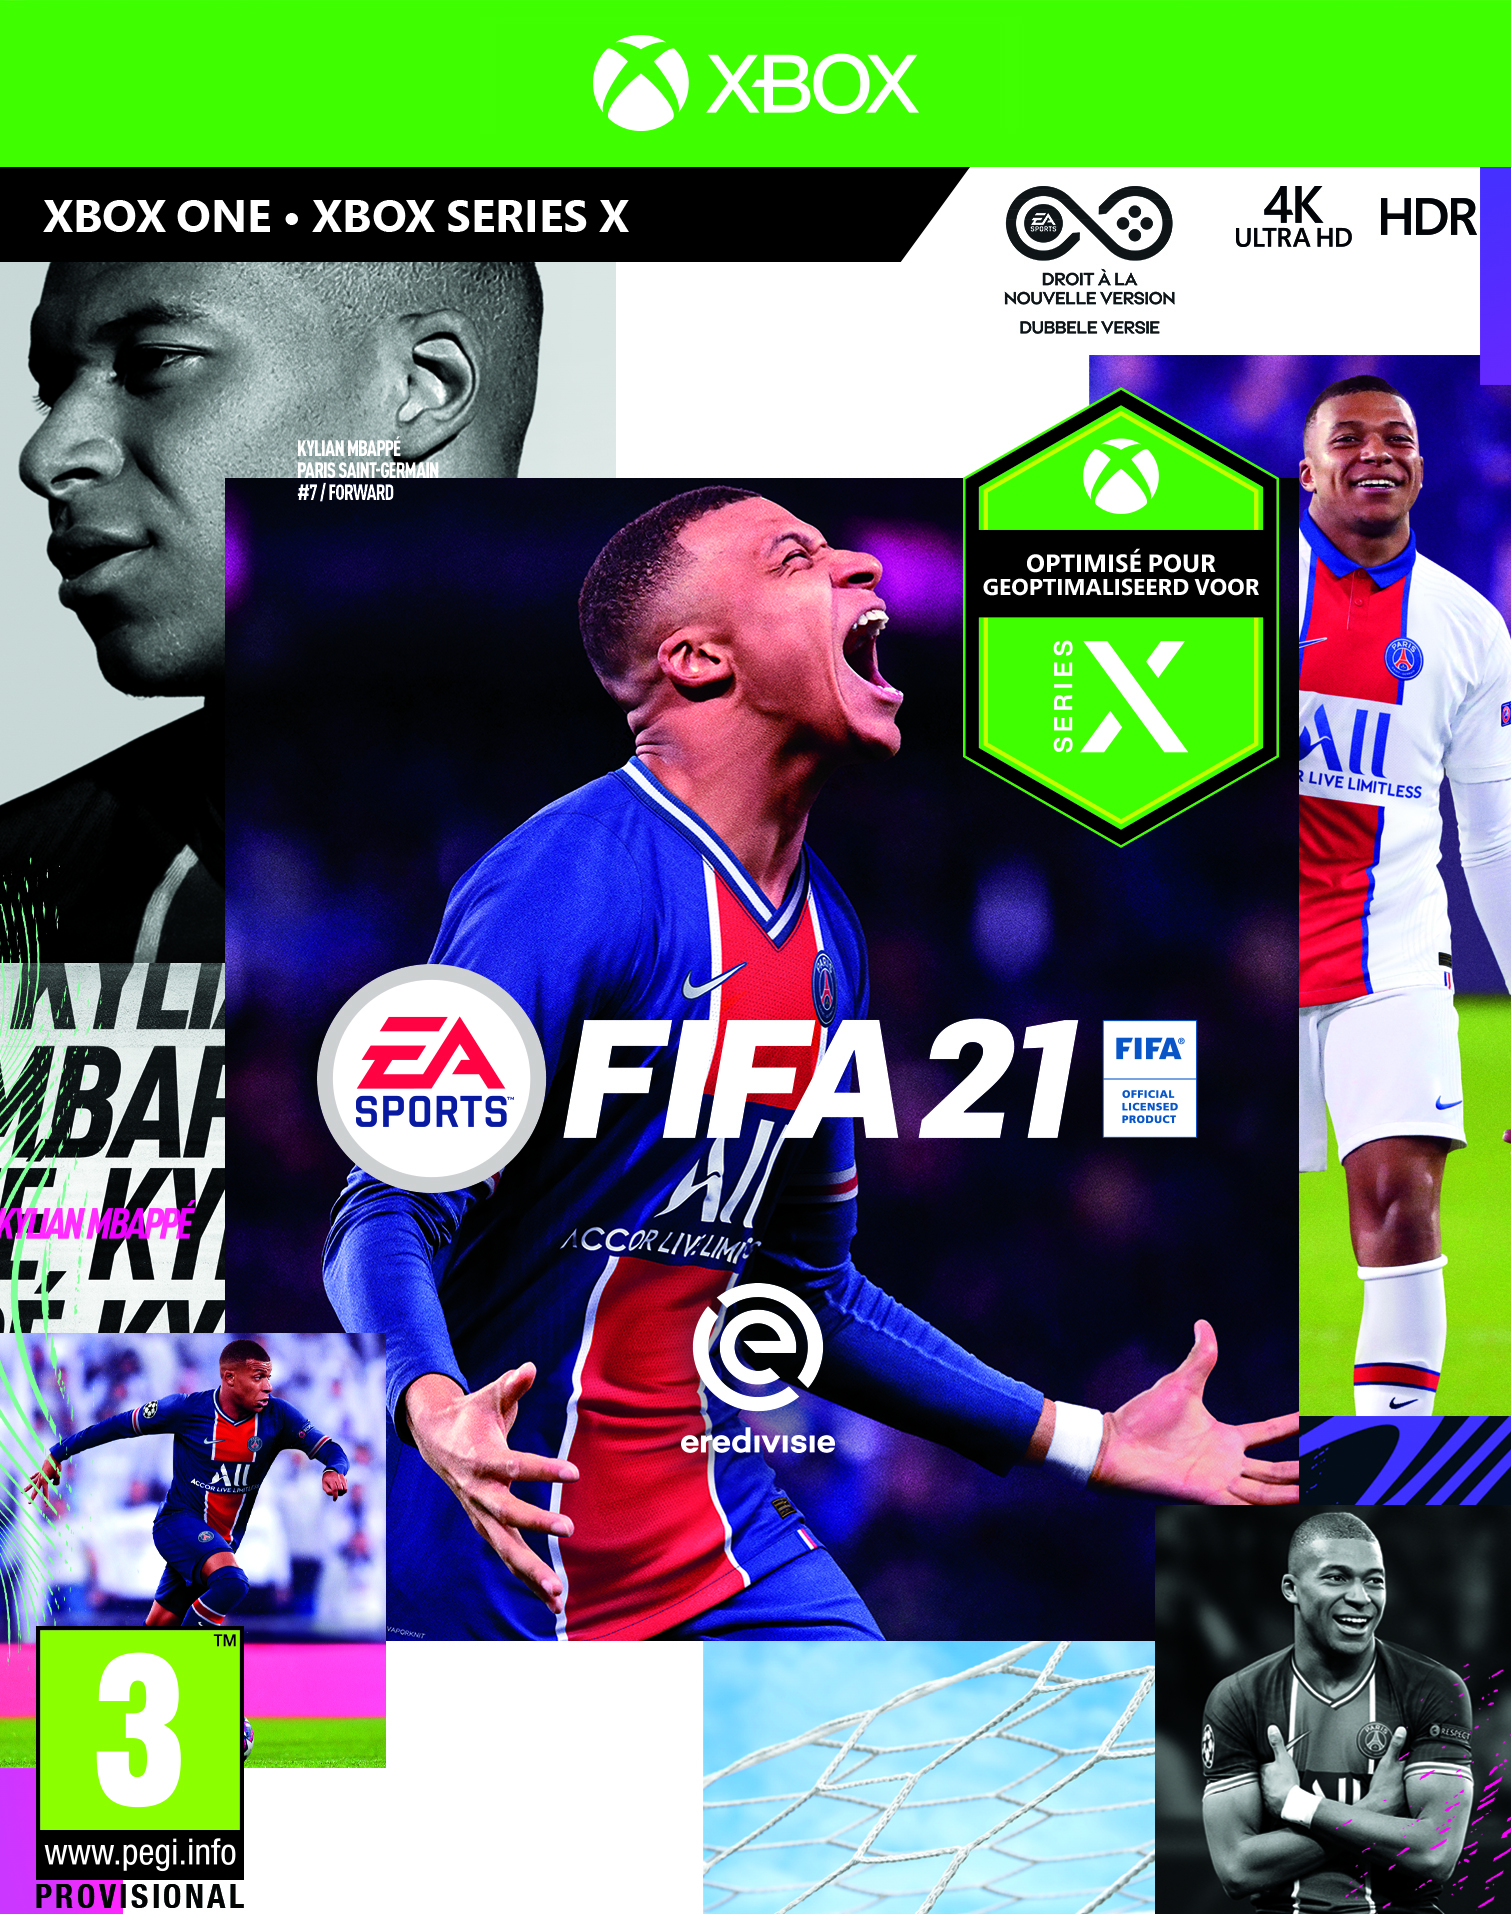 FIFA 21: Stand.Edition - Xbox One/Series X